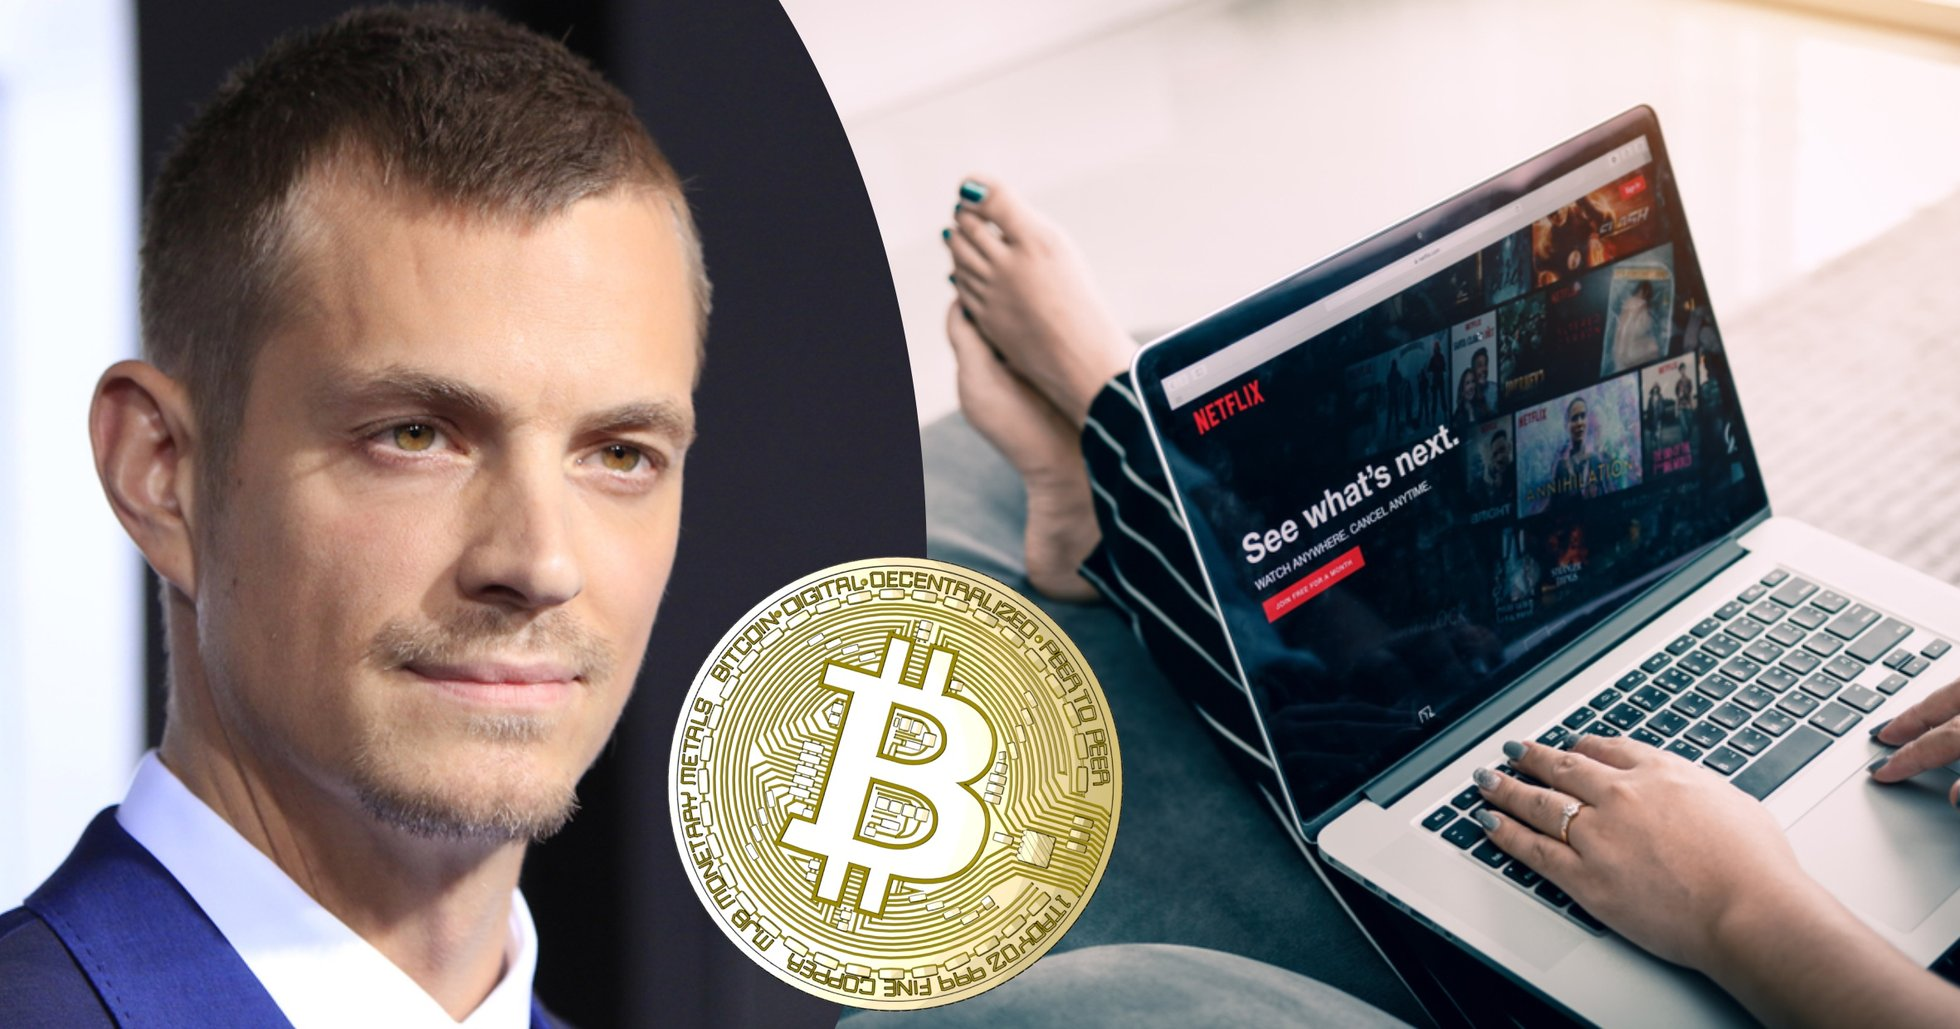 Netflix series Altered Carbon mentions bitcoin - but something's wrong